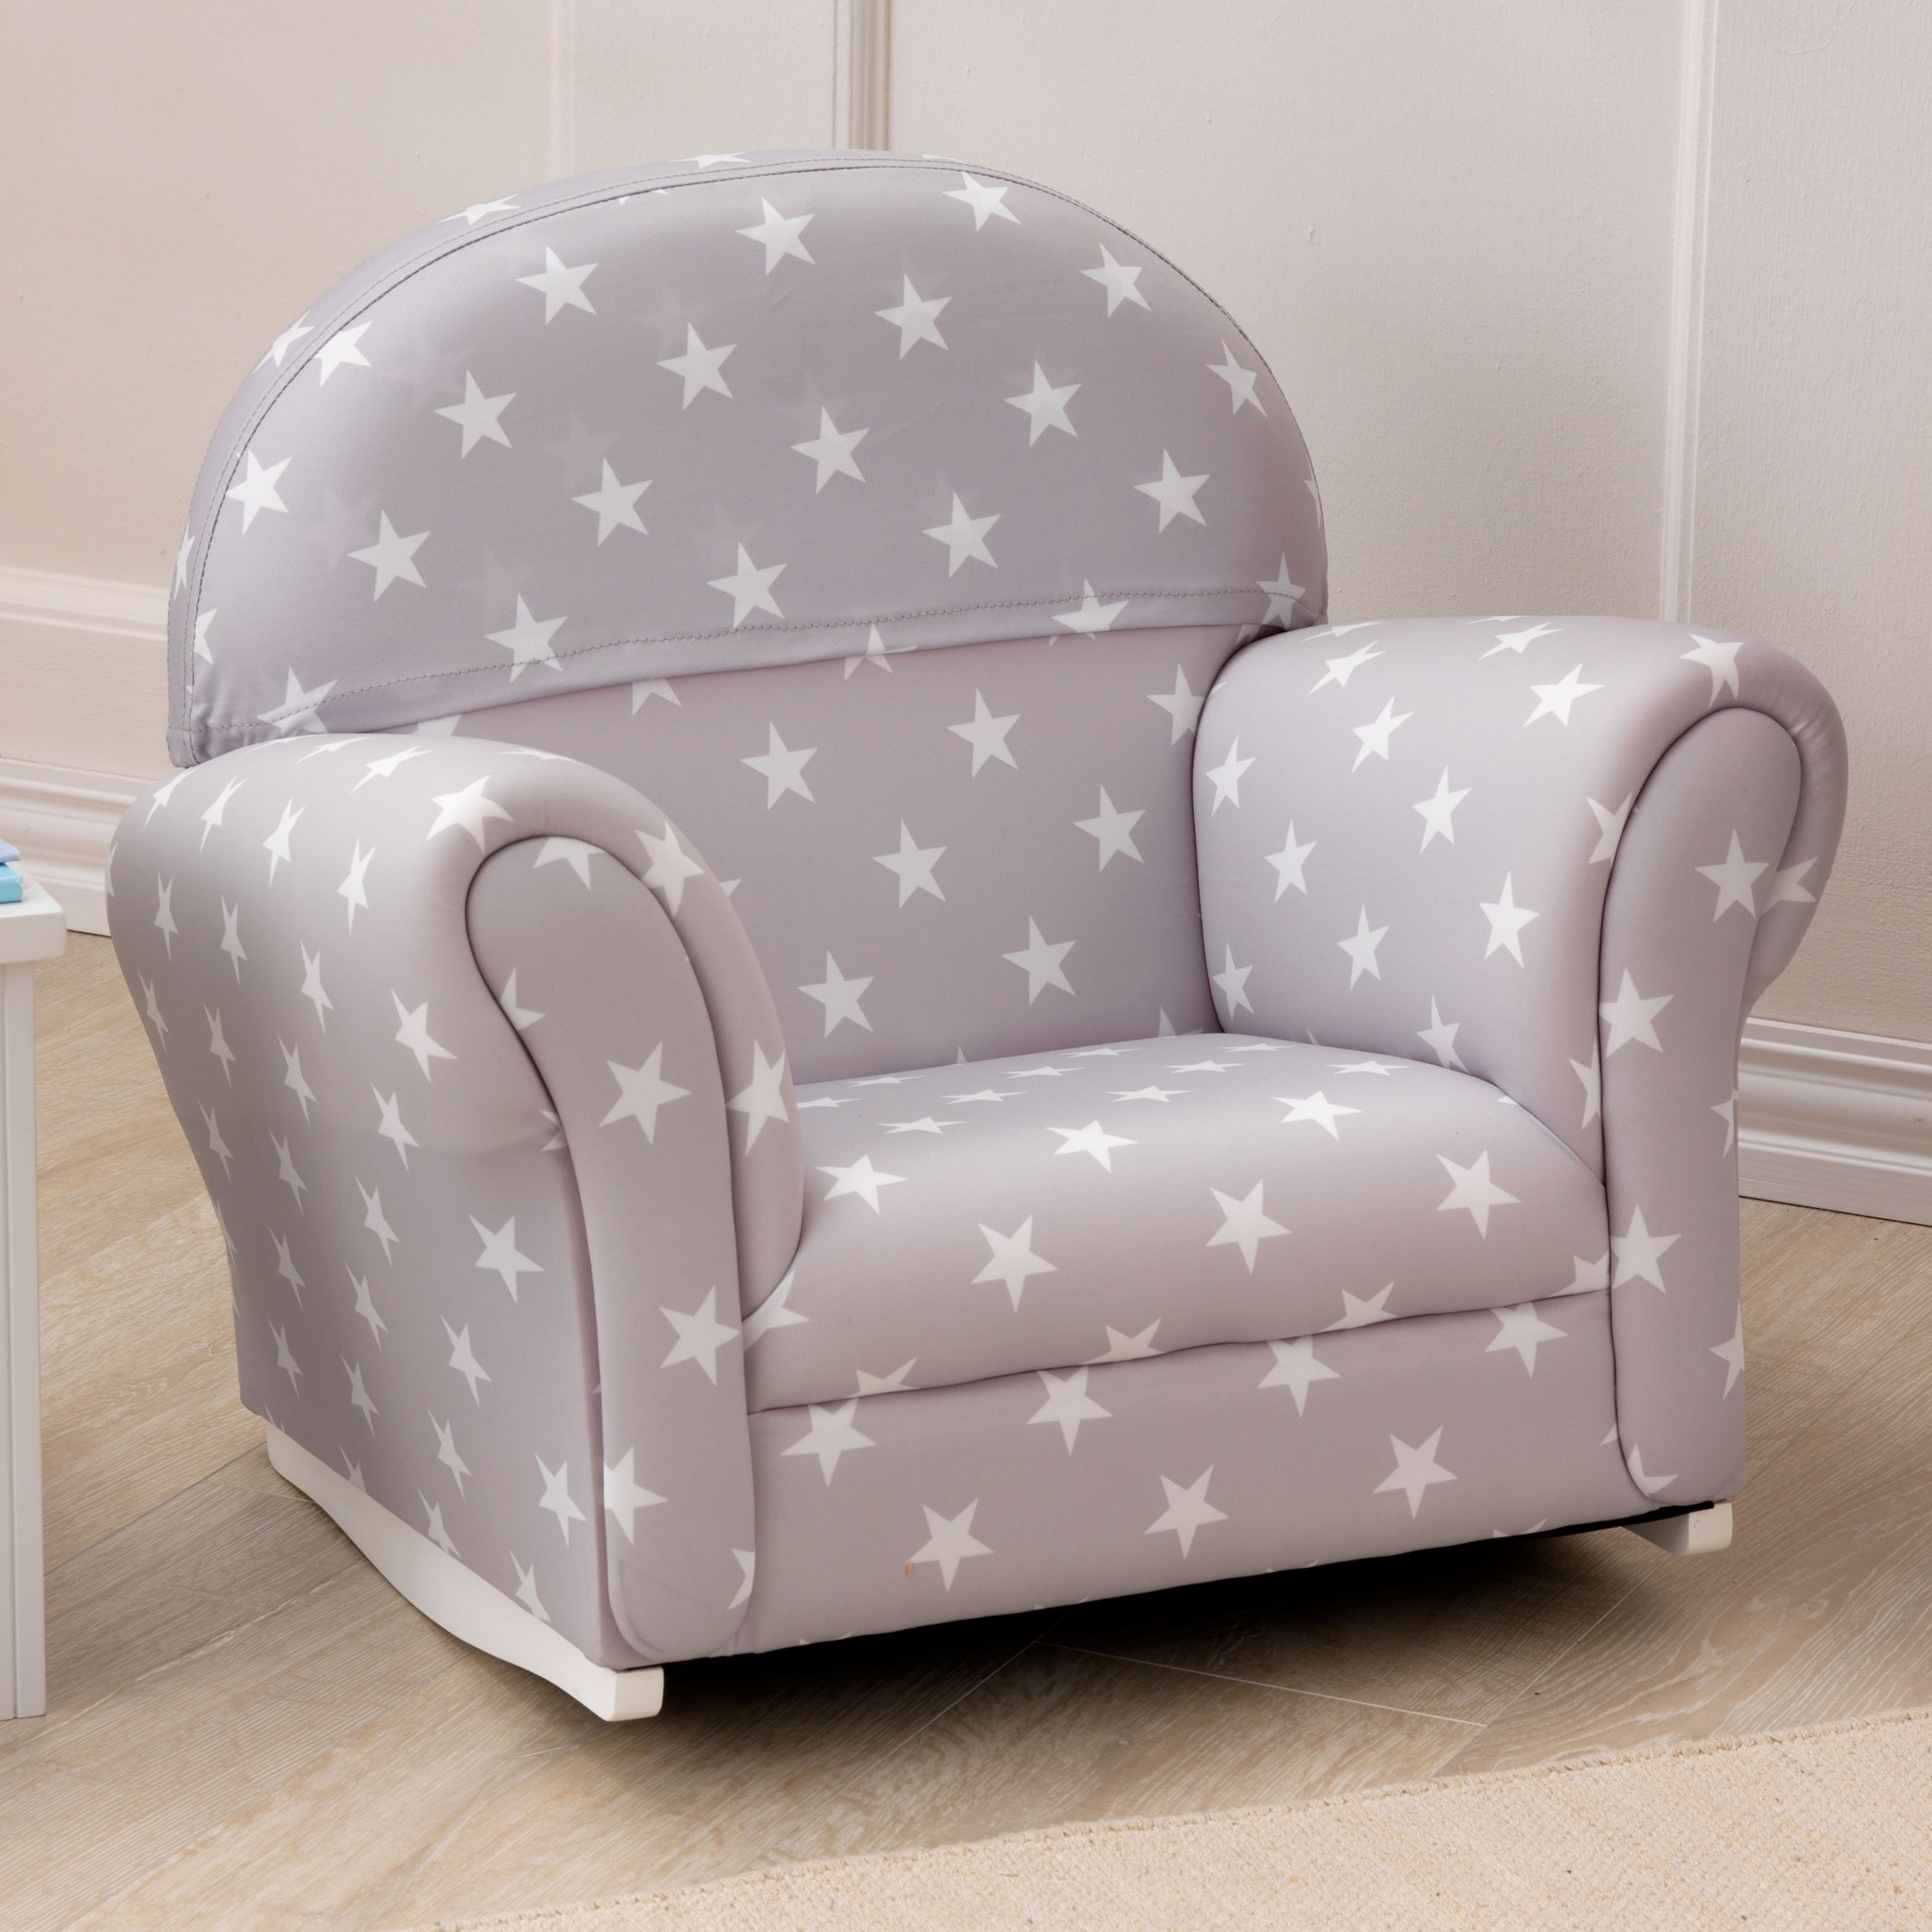 Rocking Sofa Chairs Regarding Current Armchair : Upholstered Toddler Chairs Toddler Chair With Name Kids (View 13 of 20)